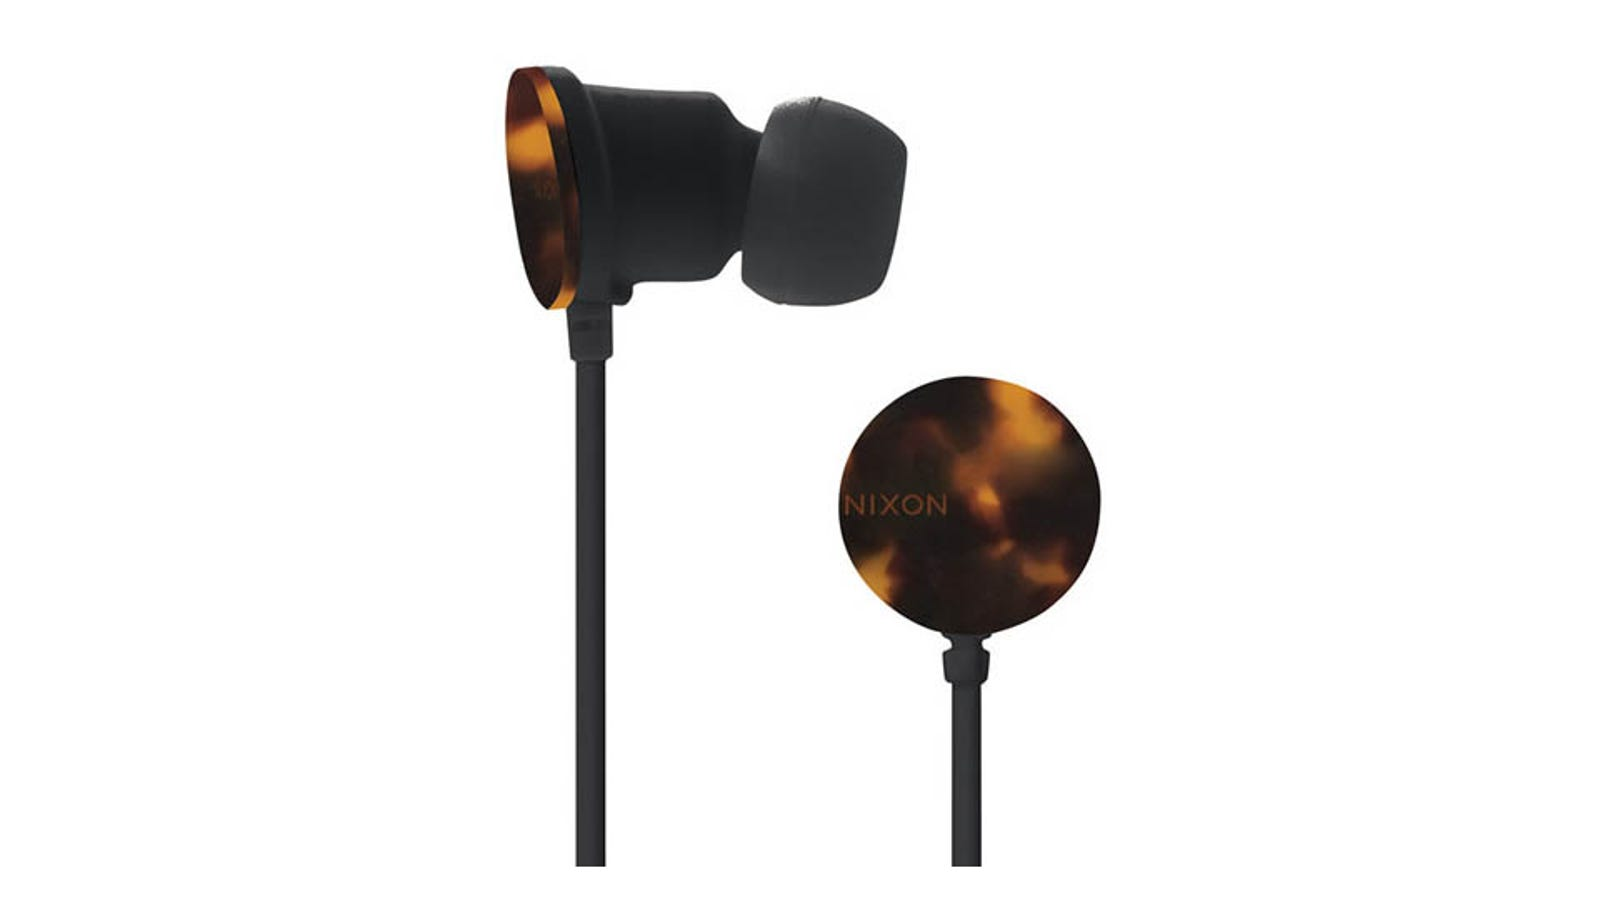 tangle free earbuds - Nixon Offers Up Tortoise Shell Earbuds to Match Your Tortoise Shell Sunglasses